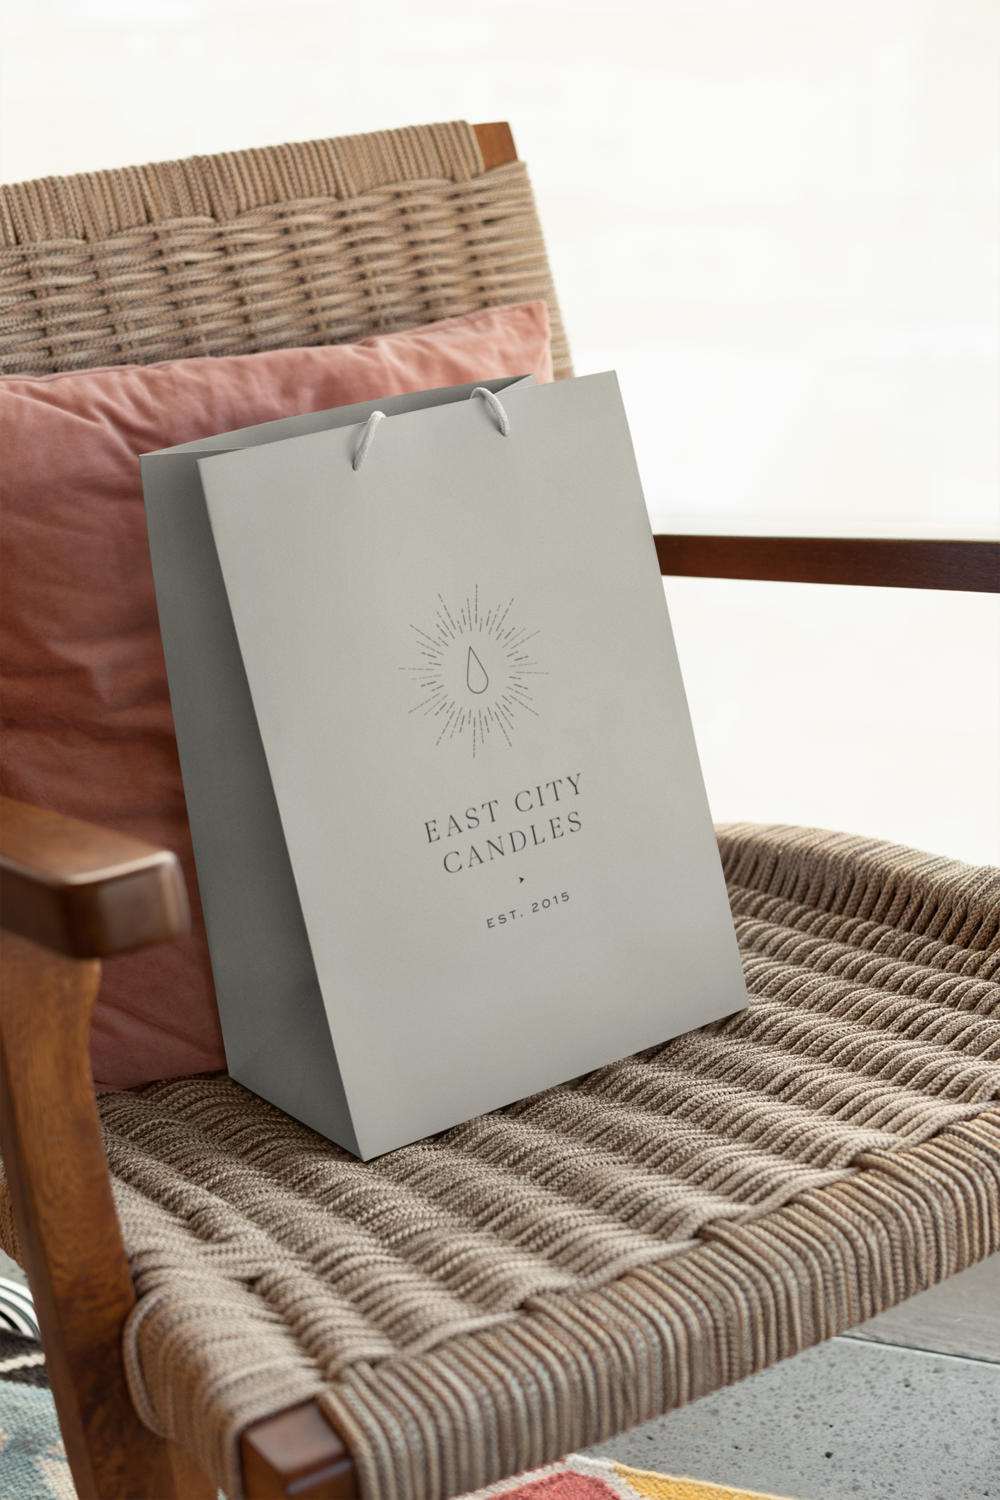 mockup-of-a-gift-bag-placed-upon-a-weaved-chair-24035.png